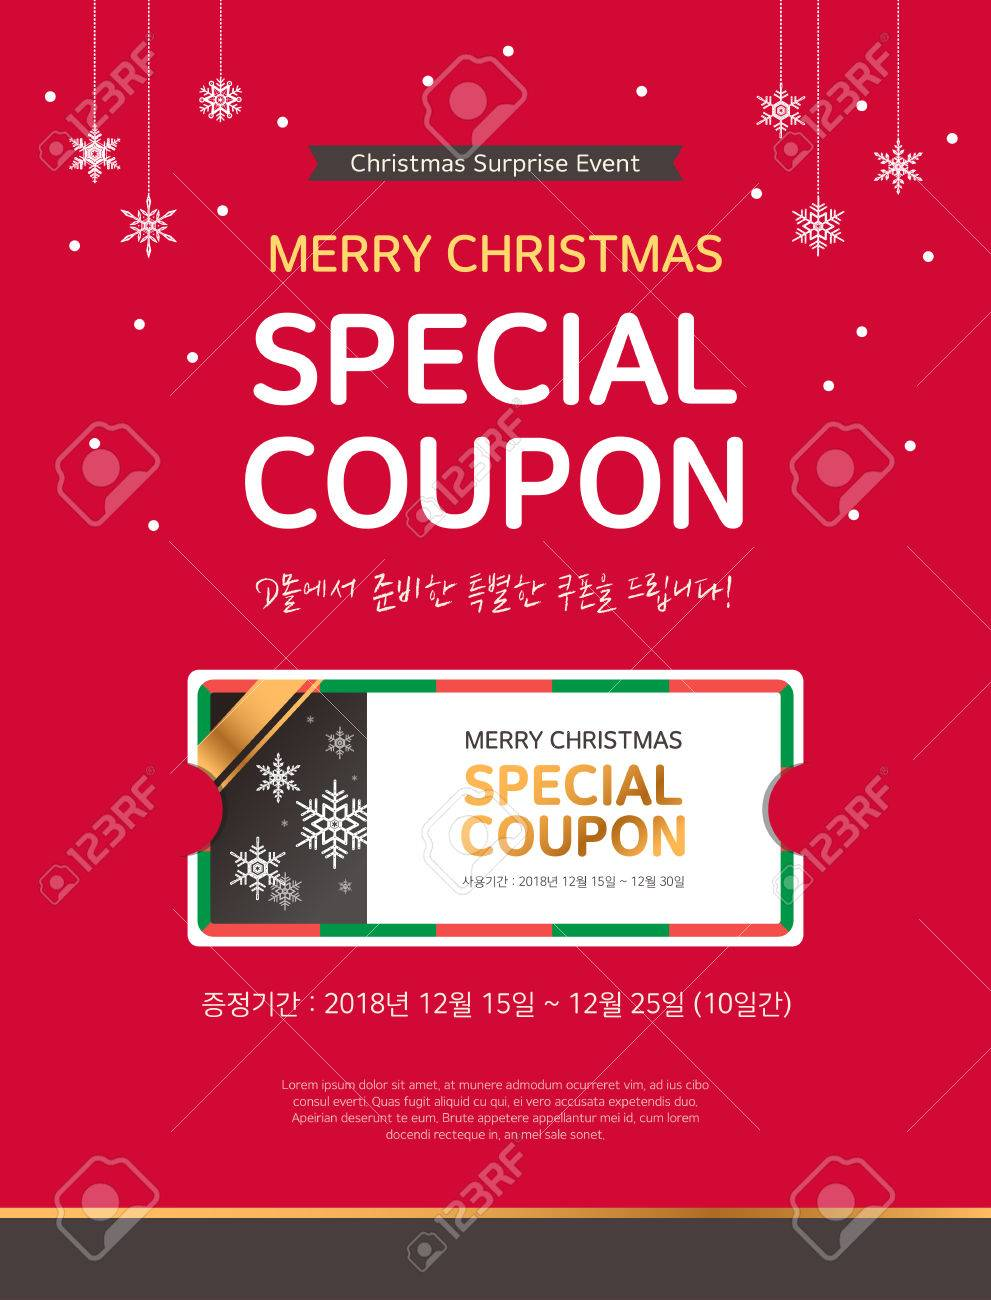 Vector Christmas Coupon Event Template Royalty Free Cliparts